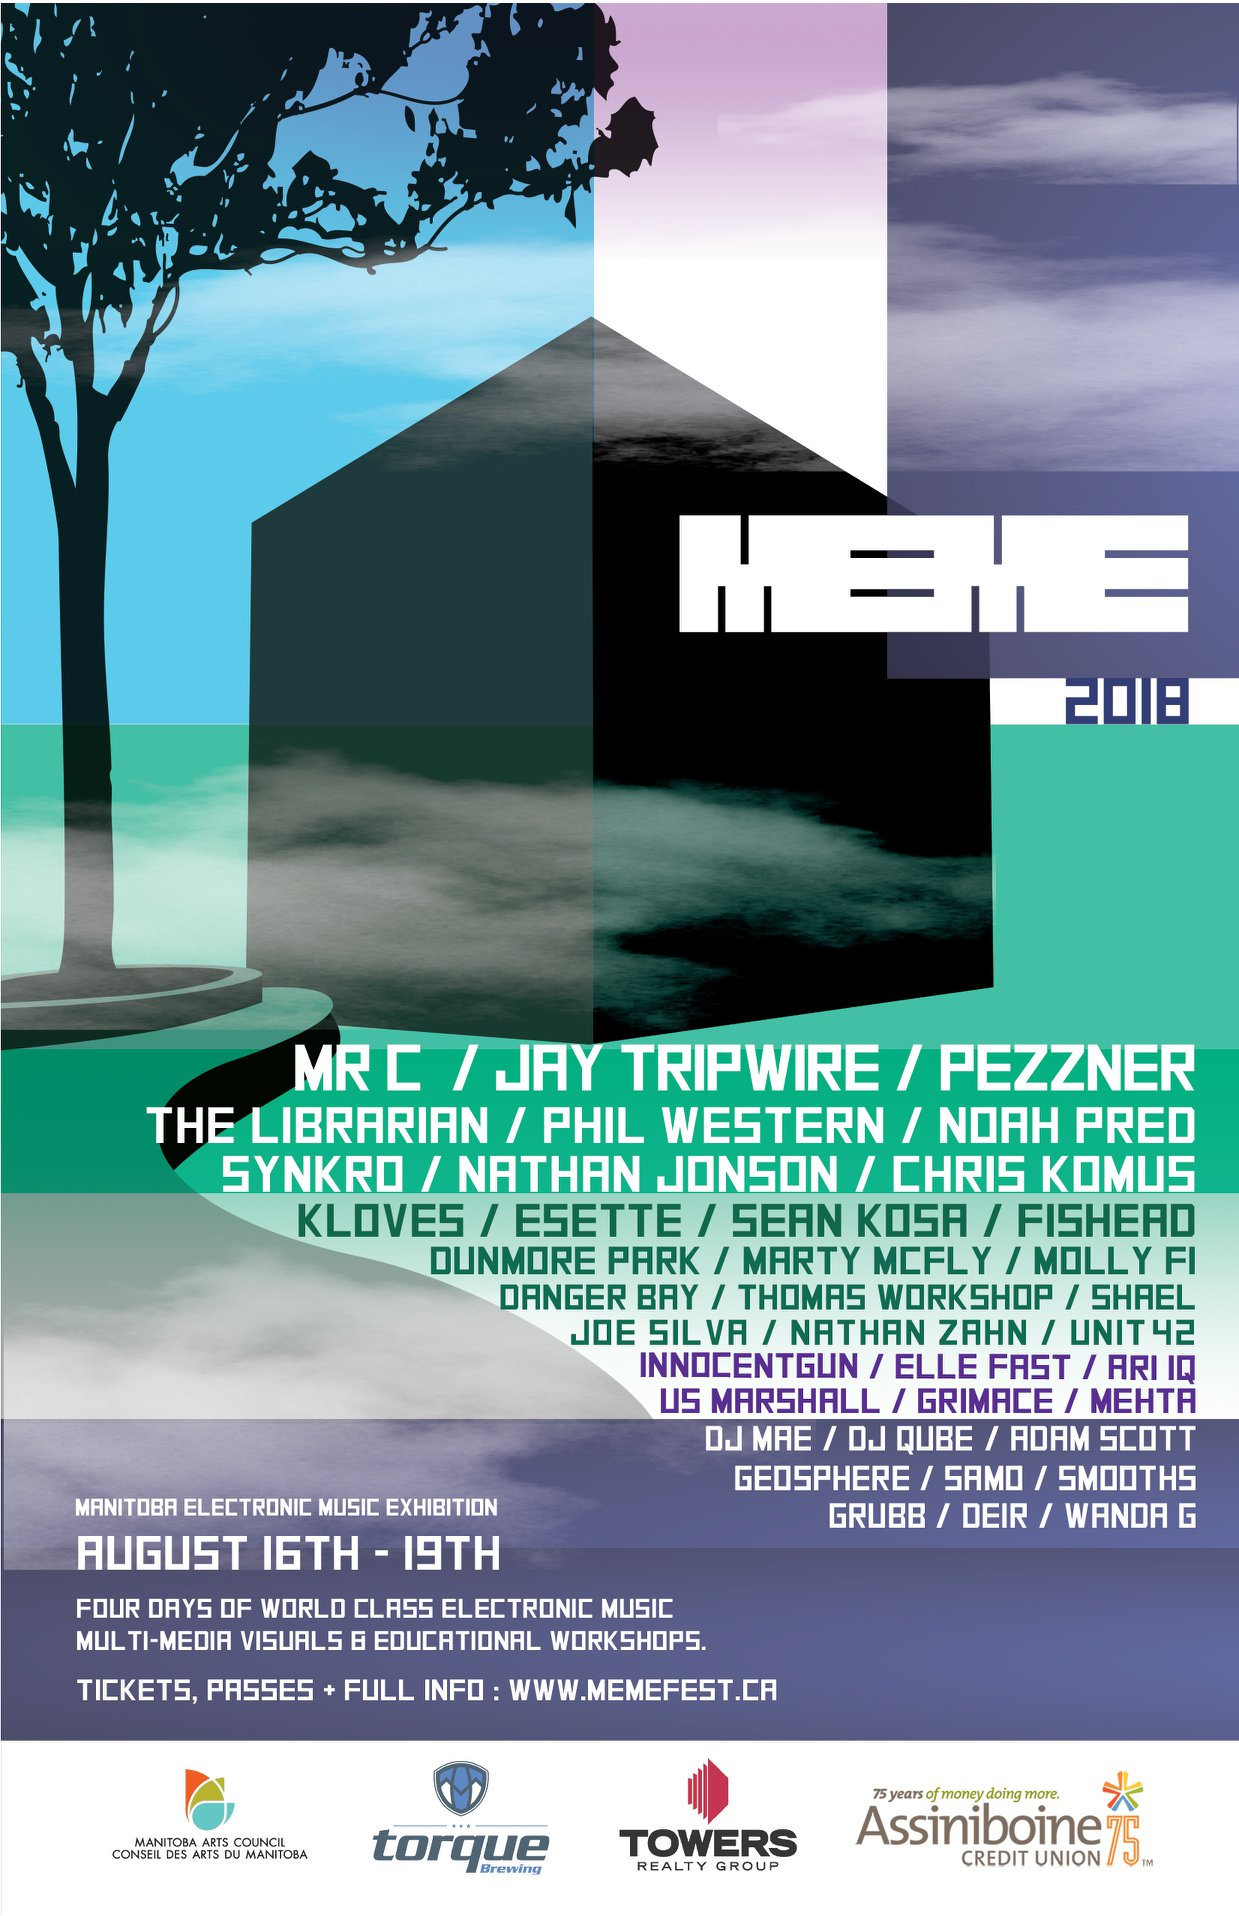 Manitoba Electronic Music Exhibition Lineup.jpg